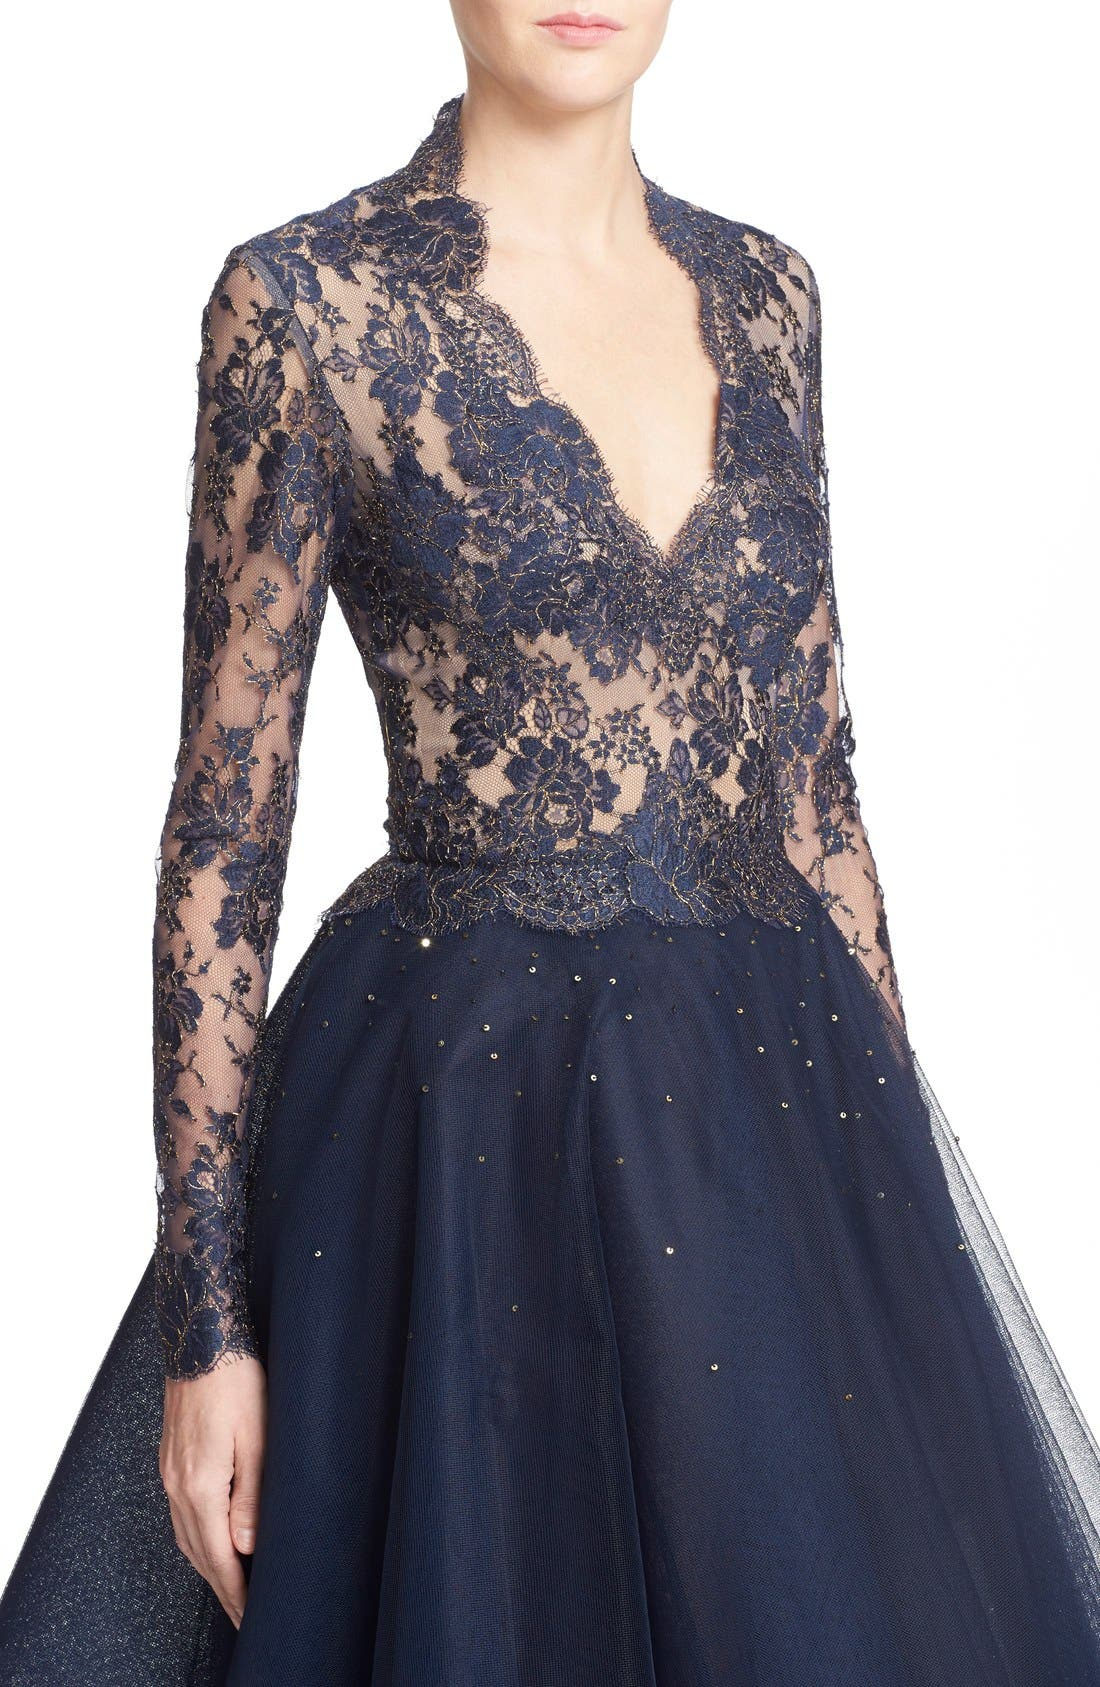 Chantilly Lace & Embellished Tulle High/Low Dress,                             Alternate thumbnail 6, color,                             410